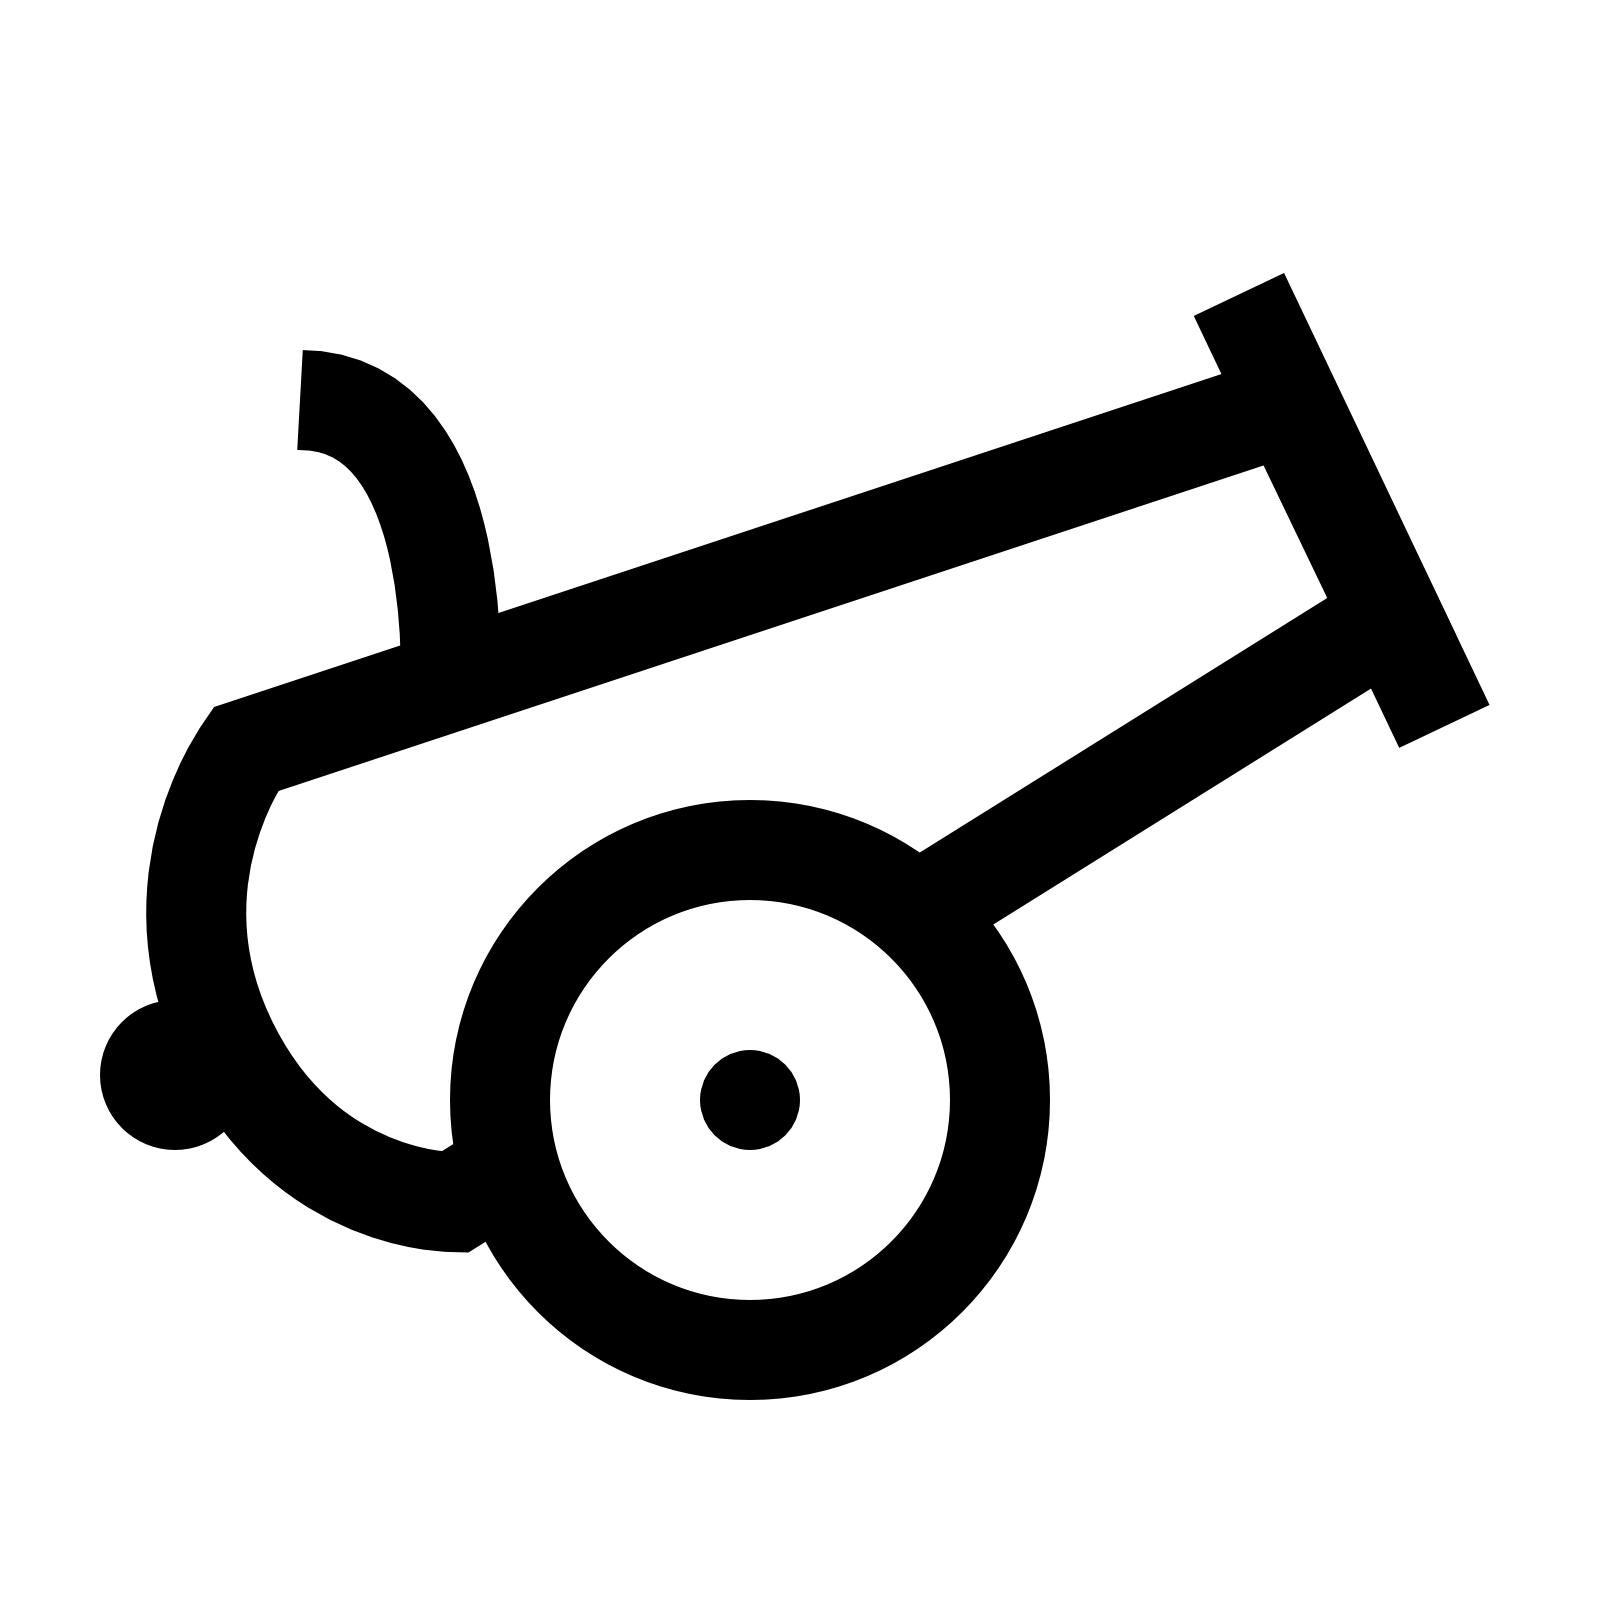 Forklift clipart black and white. Png download free car